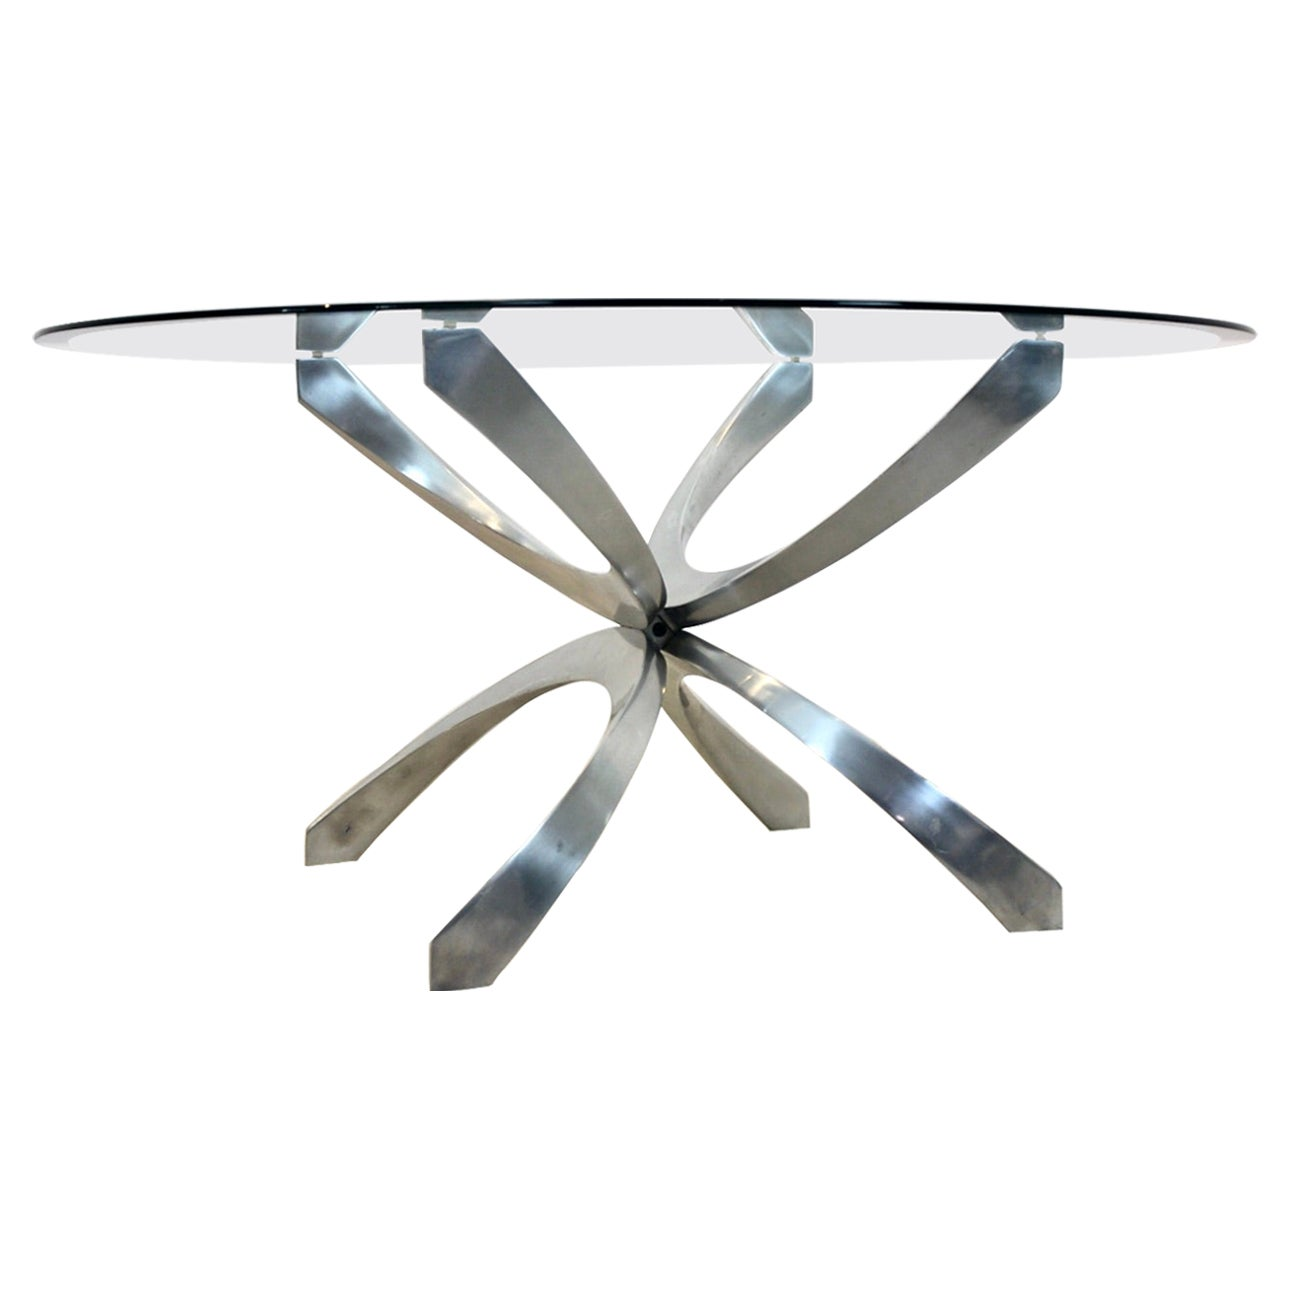 Modernist Sculptural Aluminum and Glass Coffee Table by Knut Hesterberg, 1970s